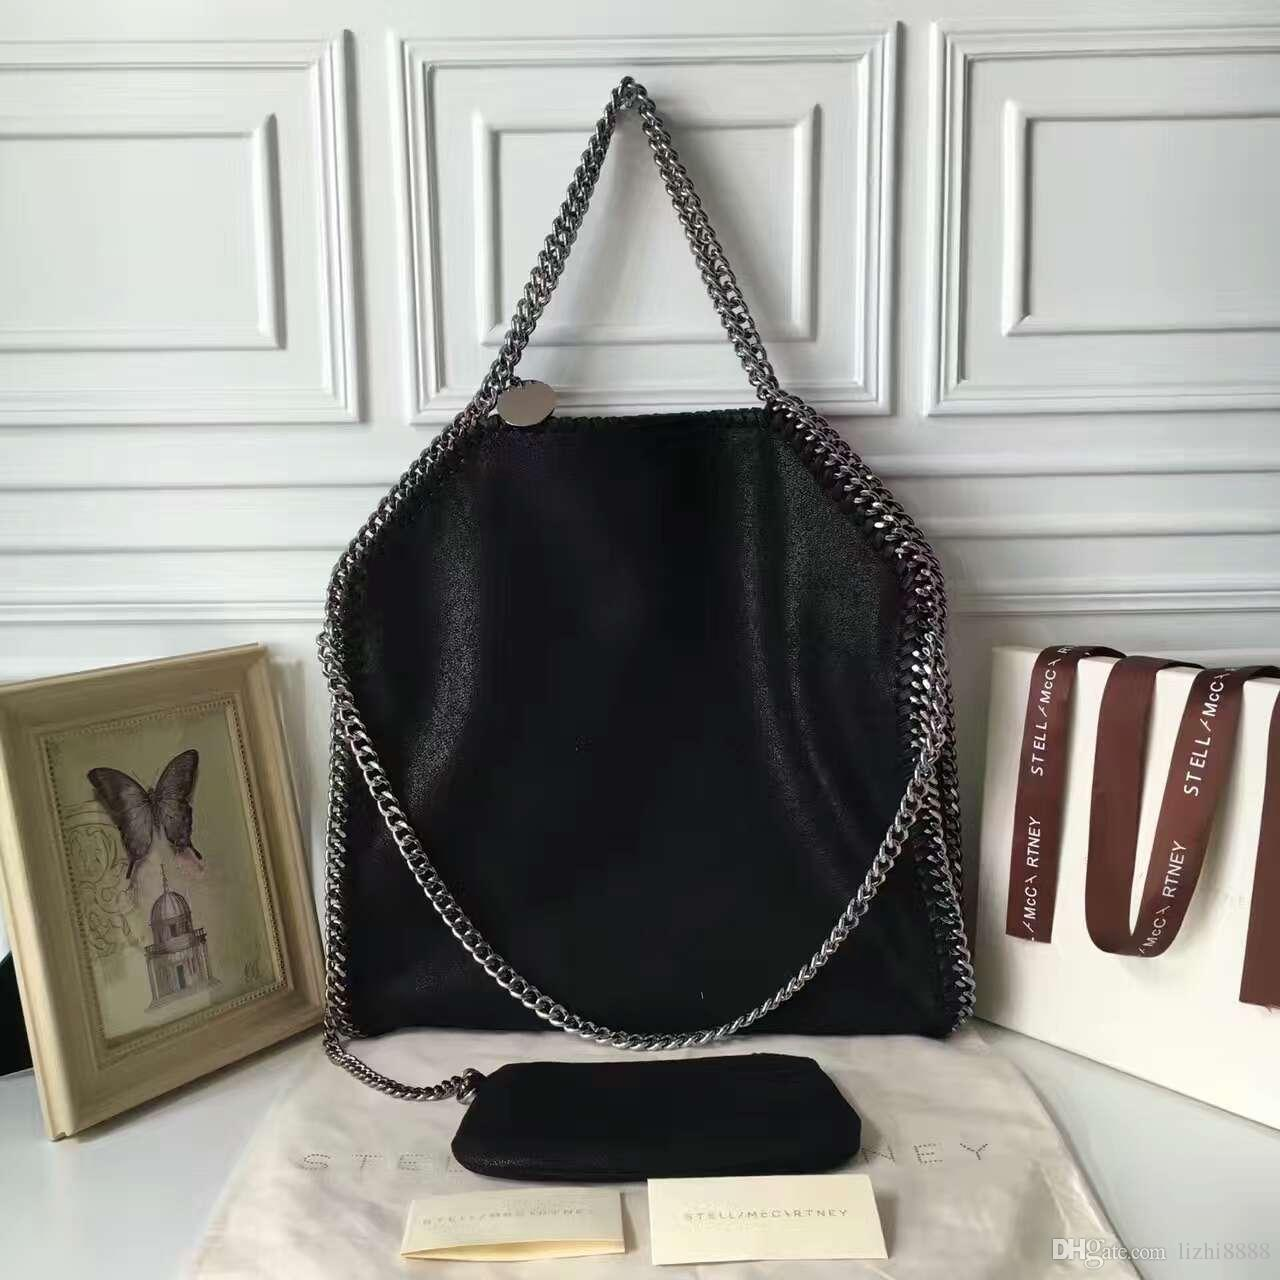 STELLA FALABELLA FOLD OVER SHAGGY DEER TOTE BAGS 3 CHAIN SHOULDER BAGS  39CM 36CM 8CM 2 BAGS Shoulder Bags Laptop Bags For Women From Lizhi8888 254536c314ec4